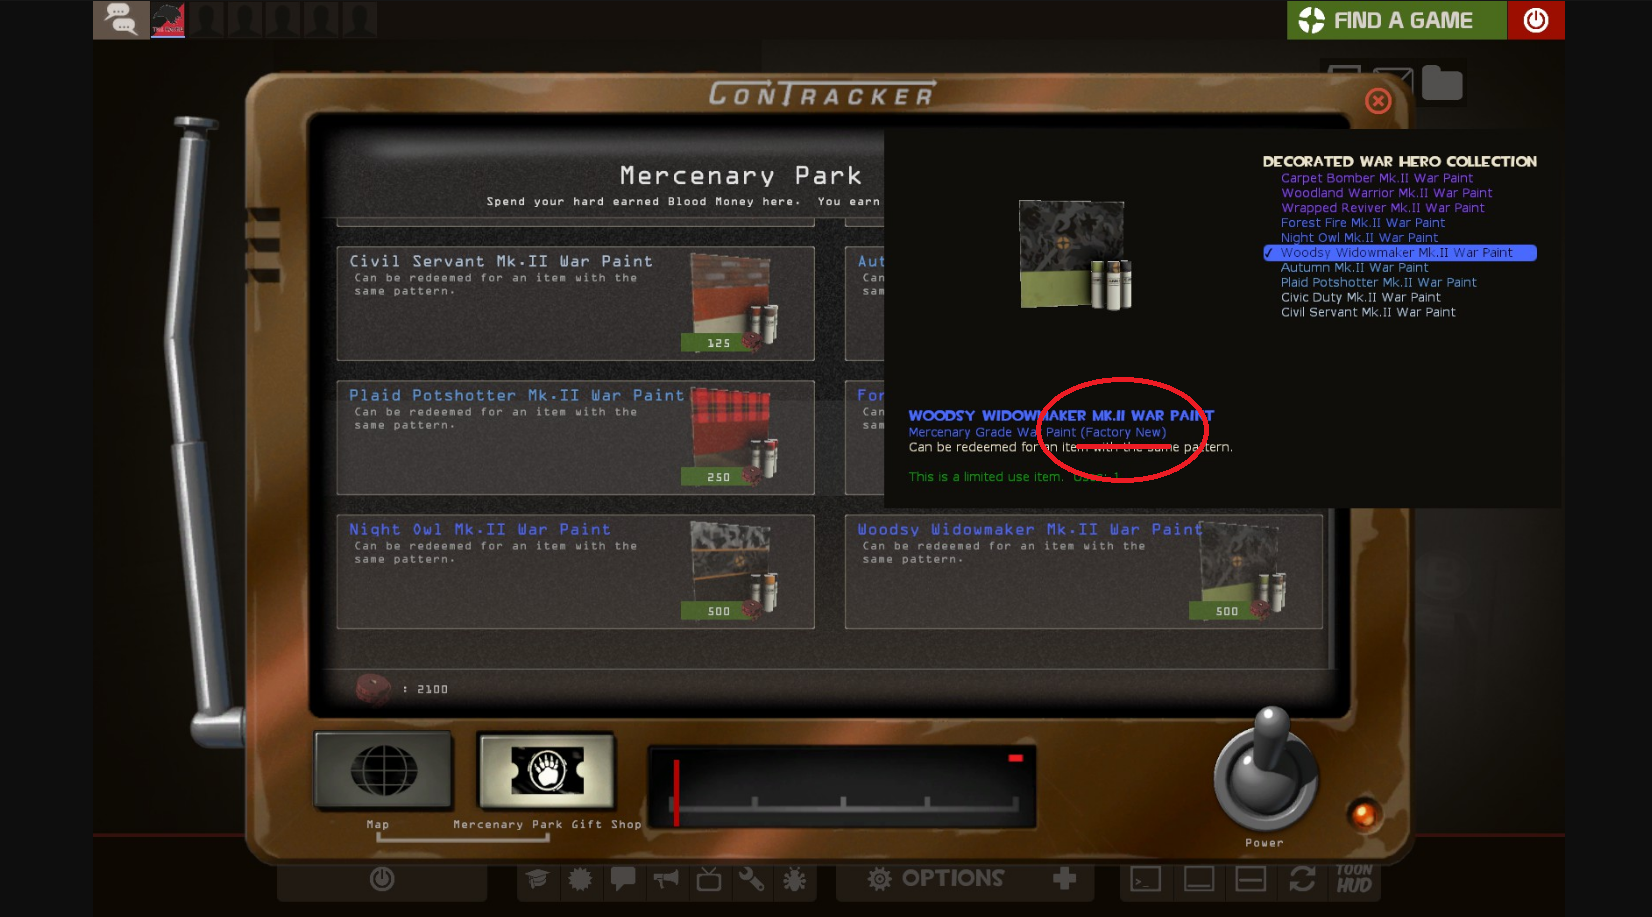 The war paints are still callled factory new is this straight up the war paints are still callled factory new is this straight up false information can i refund my non factory new war paint ccuart Choice Image